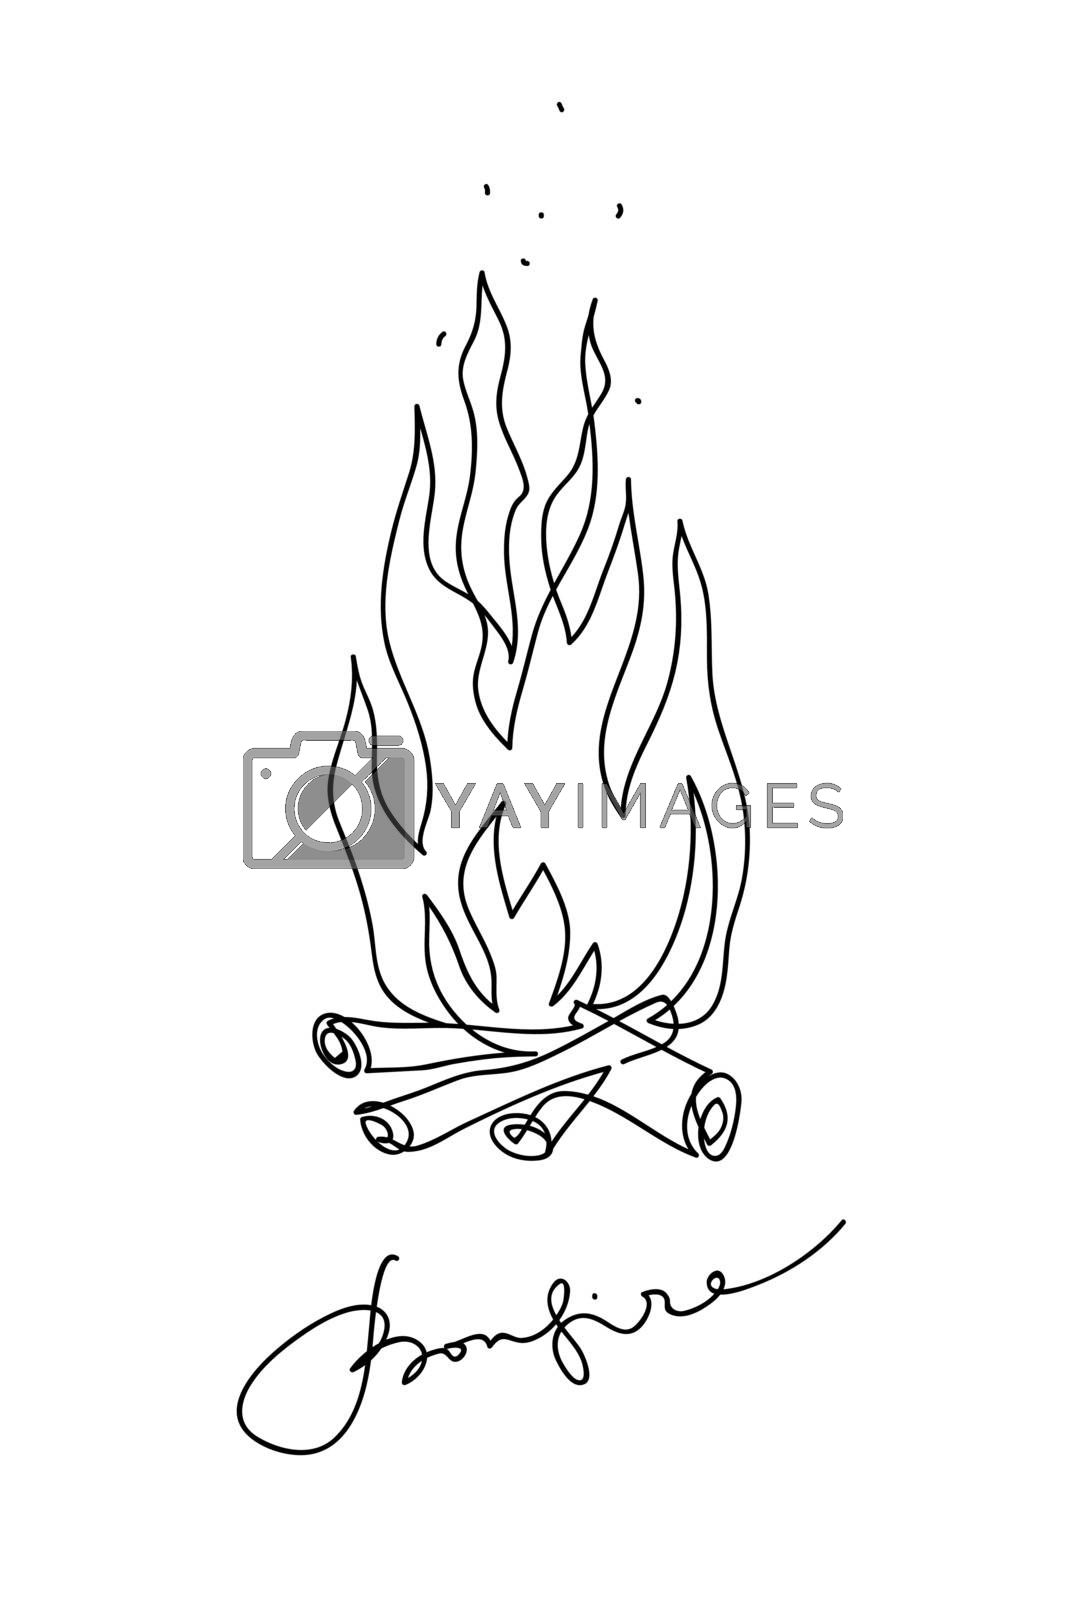 Bonfire icon. Campfire sketch line art drawing style. Continuous line art drawing. Vector outline illustration.